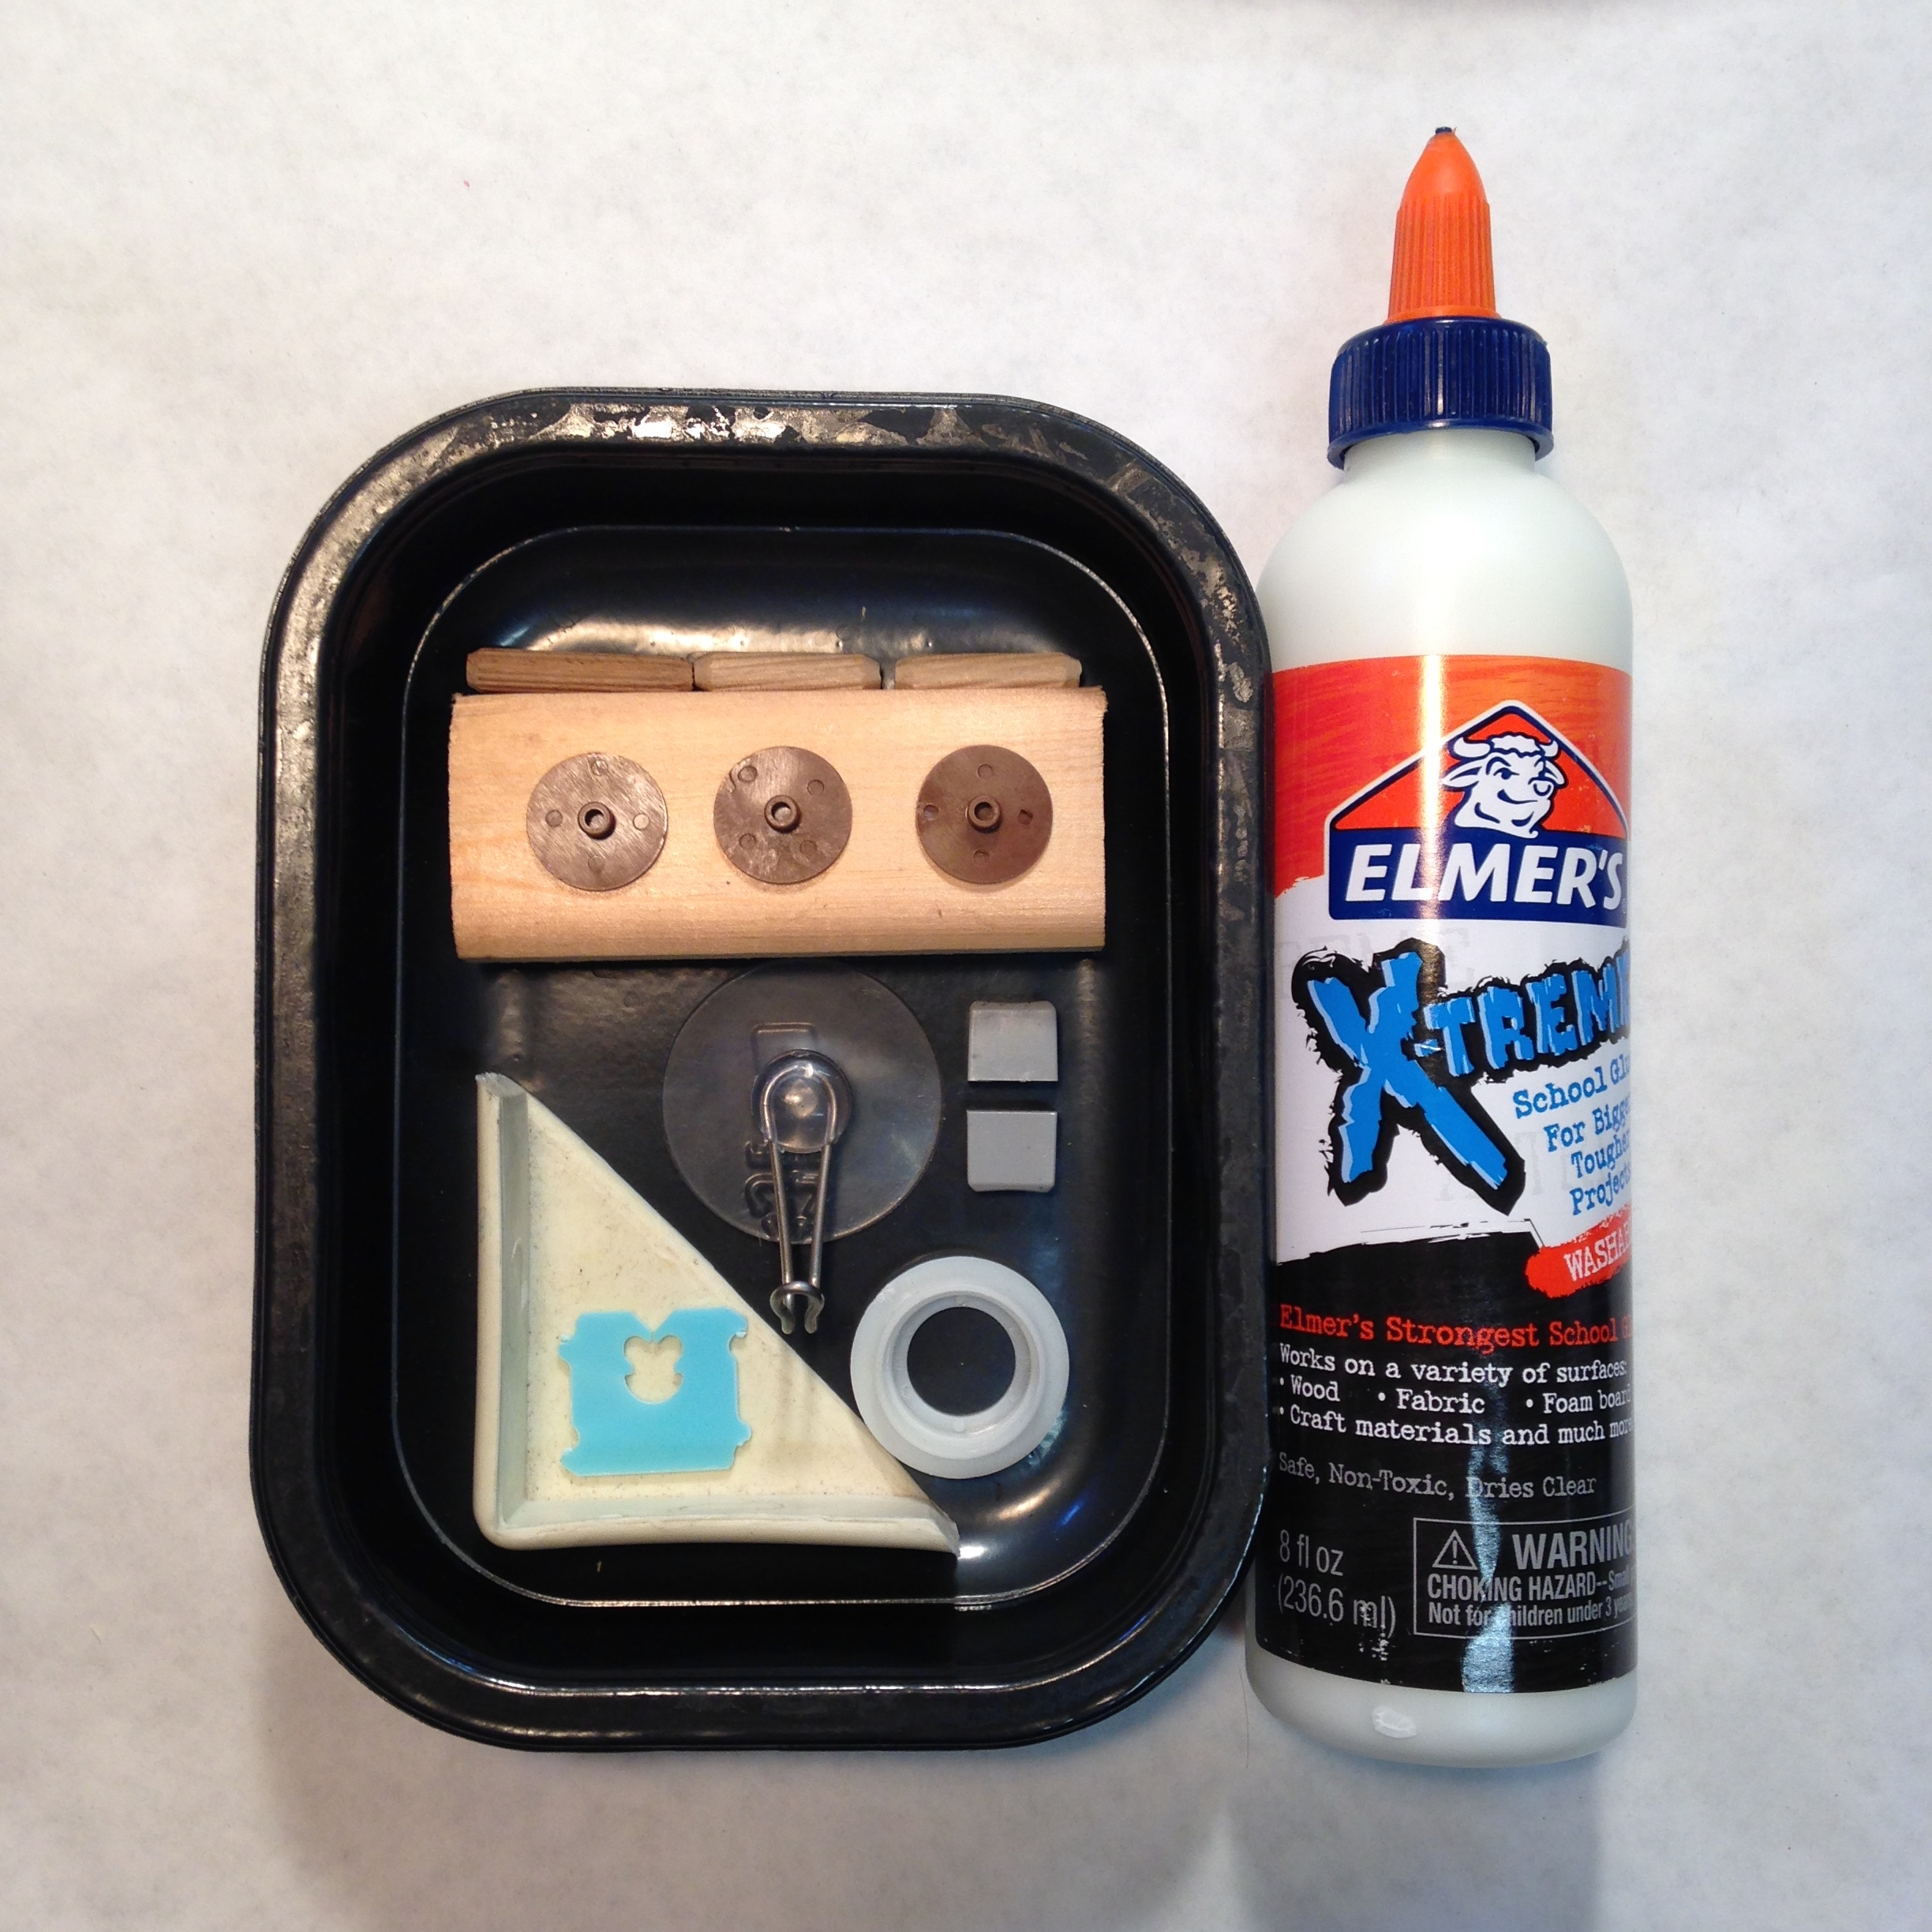 Elmer's X-TREME School Glue works on a variety of surfaces